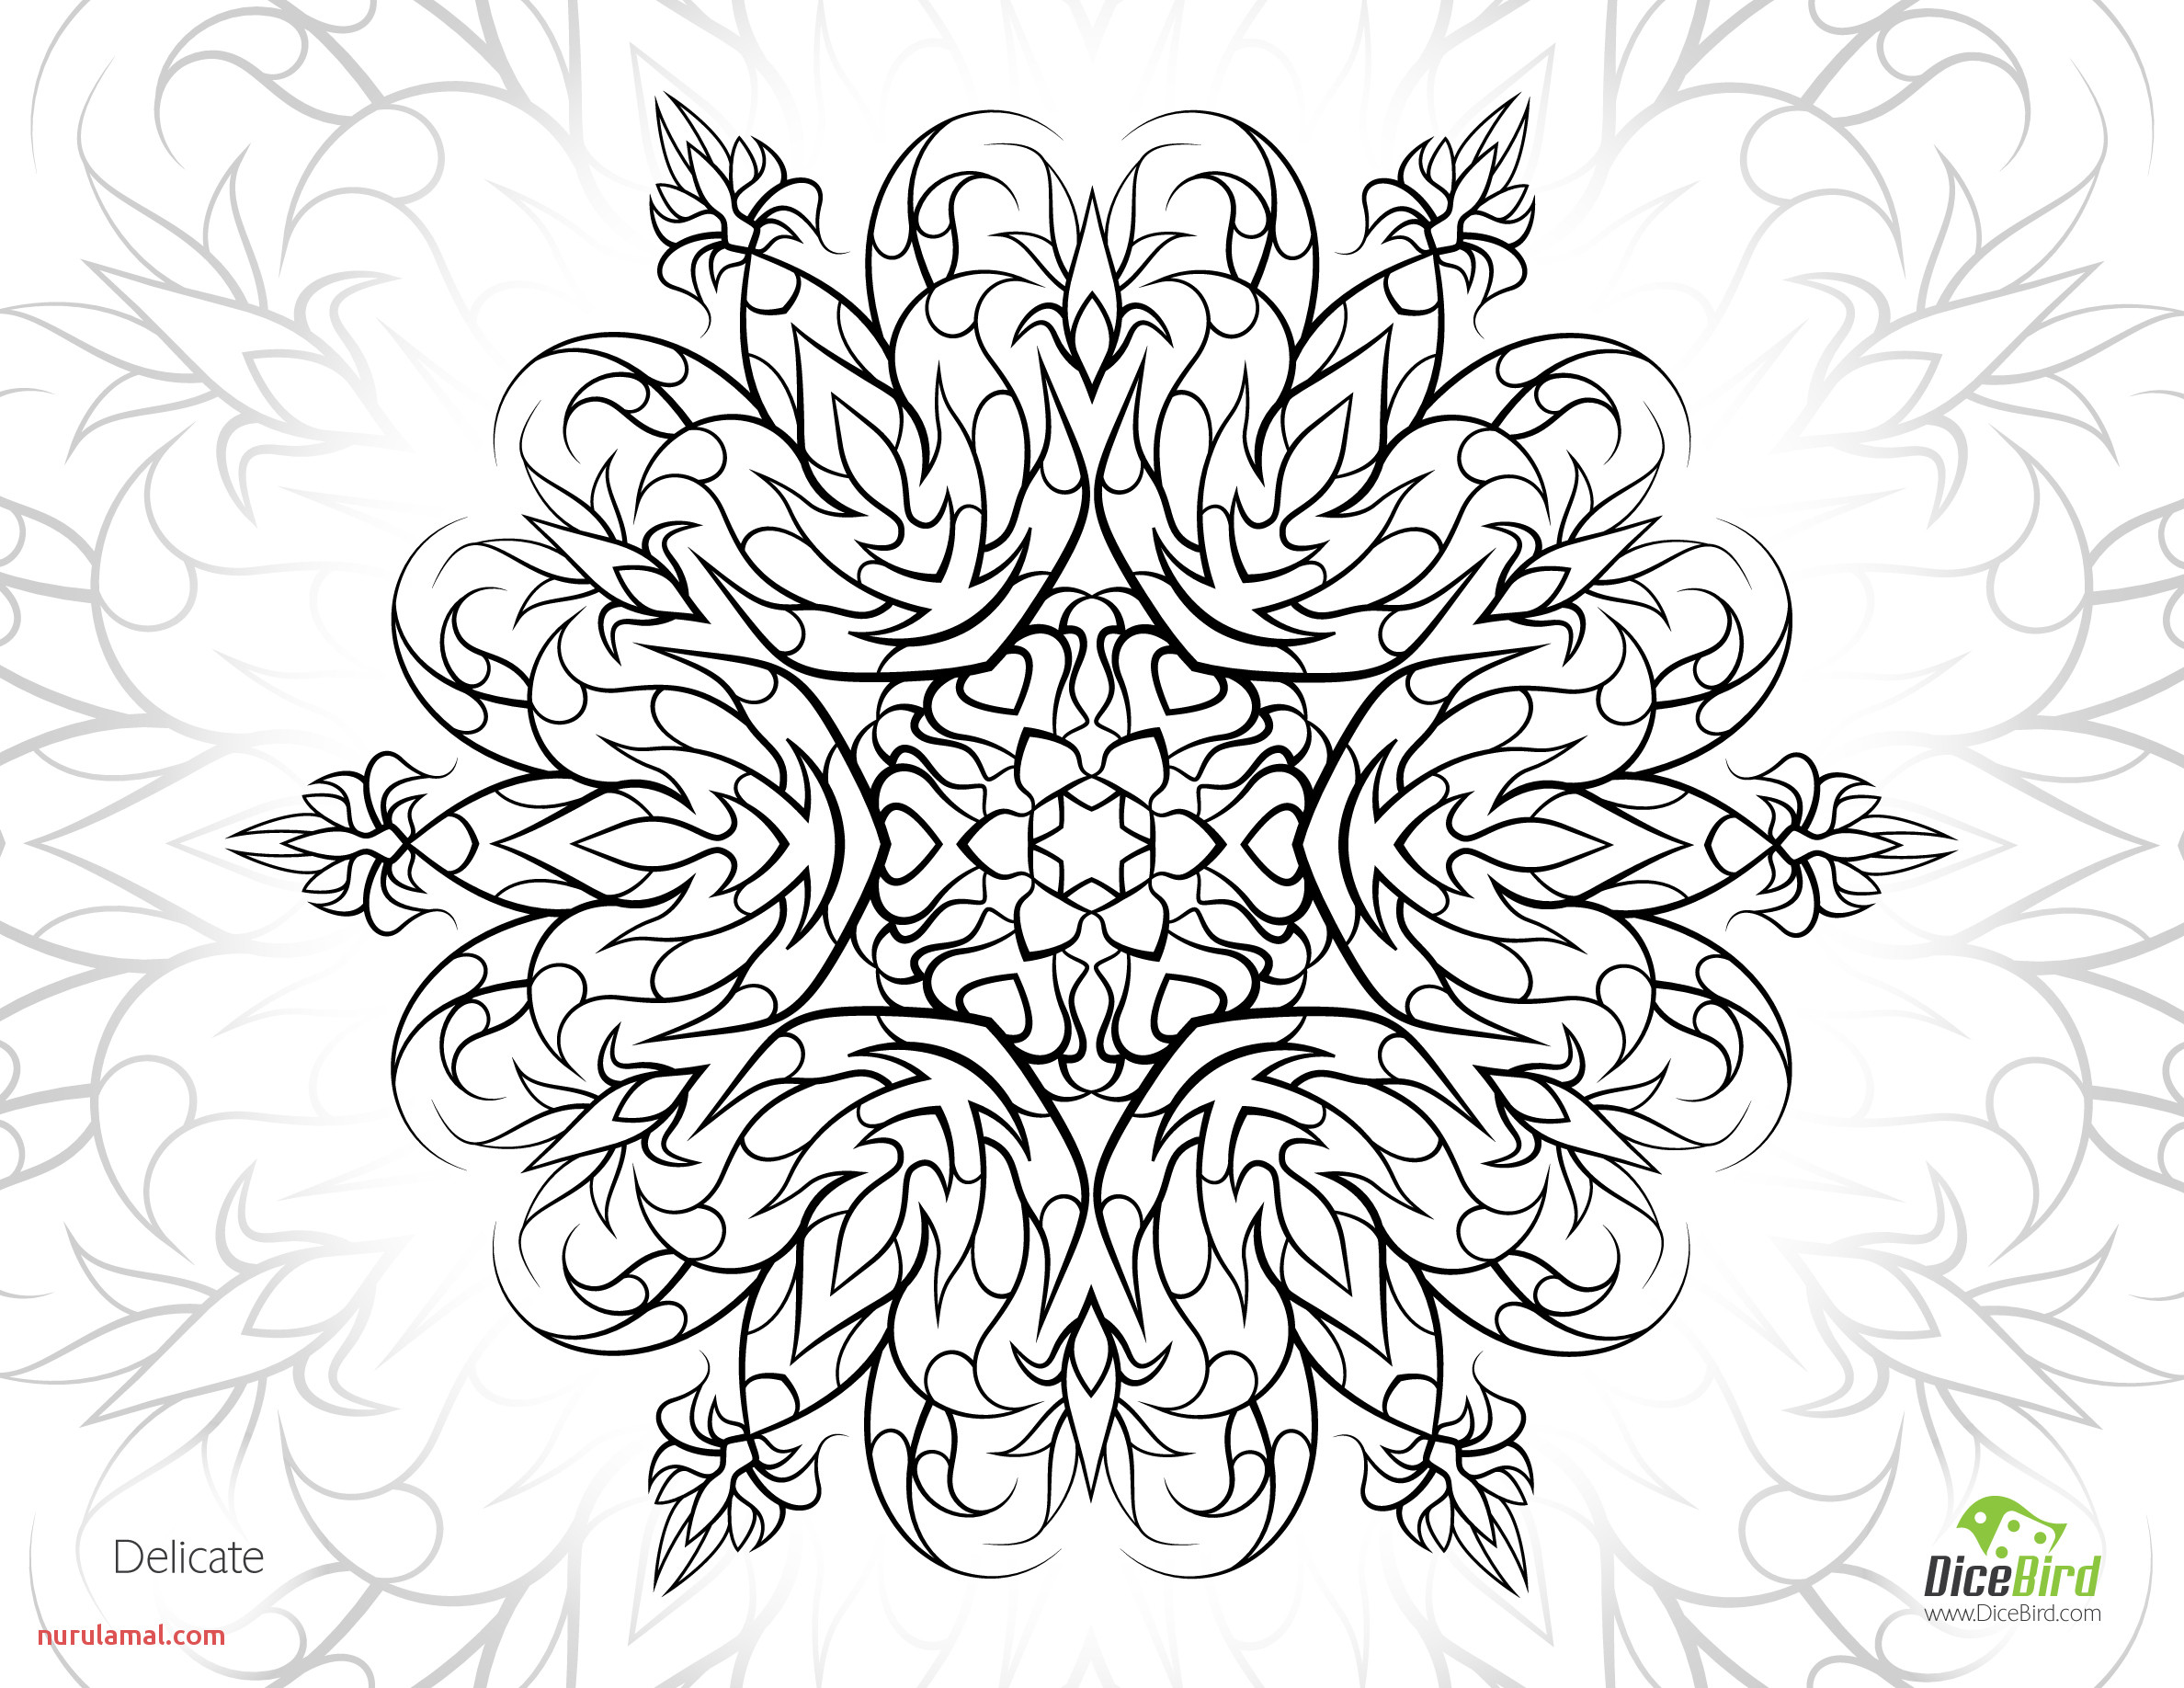 5d ef9e79fab bb024f917 28 collection of stress relief flower coloring pages high 2376 books free clipart games